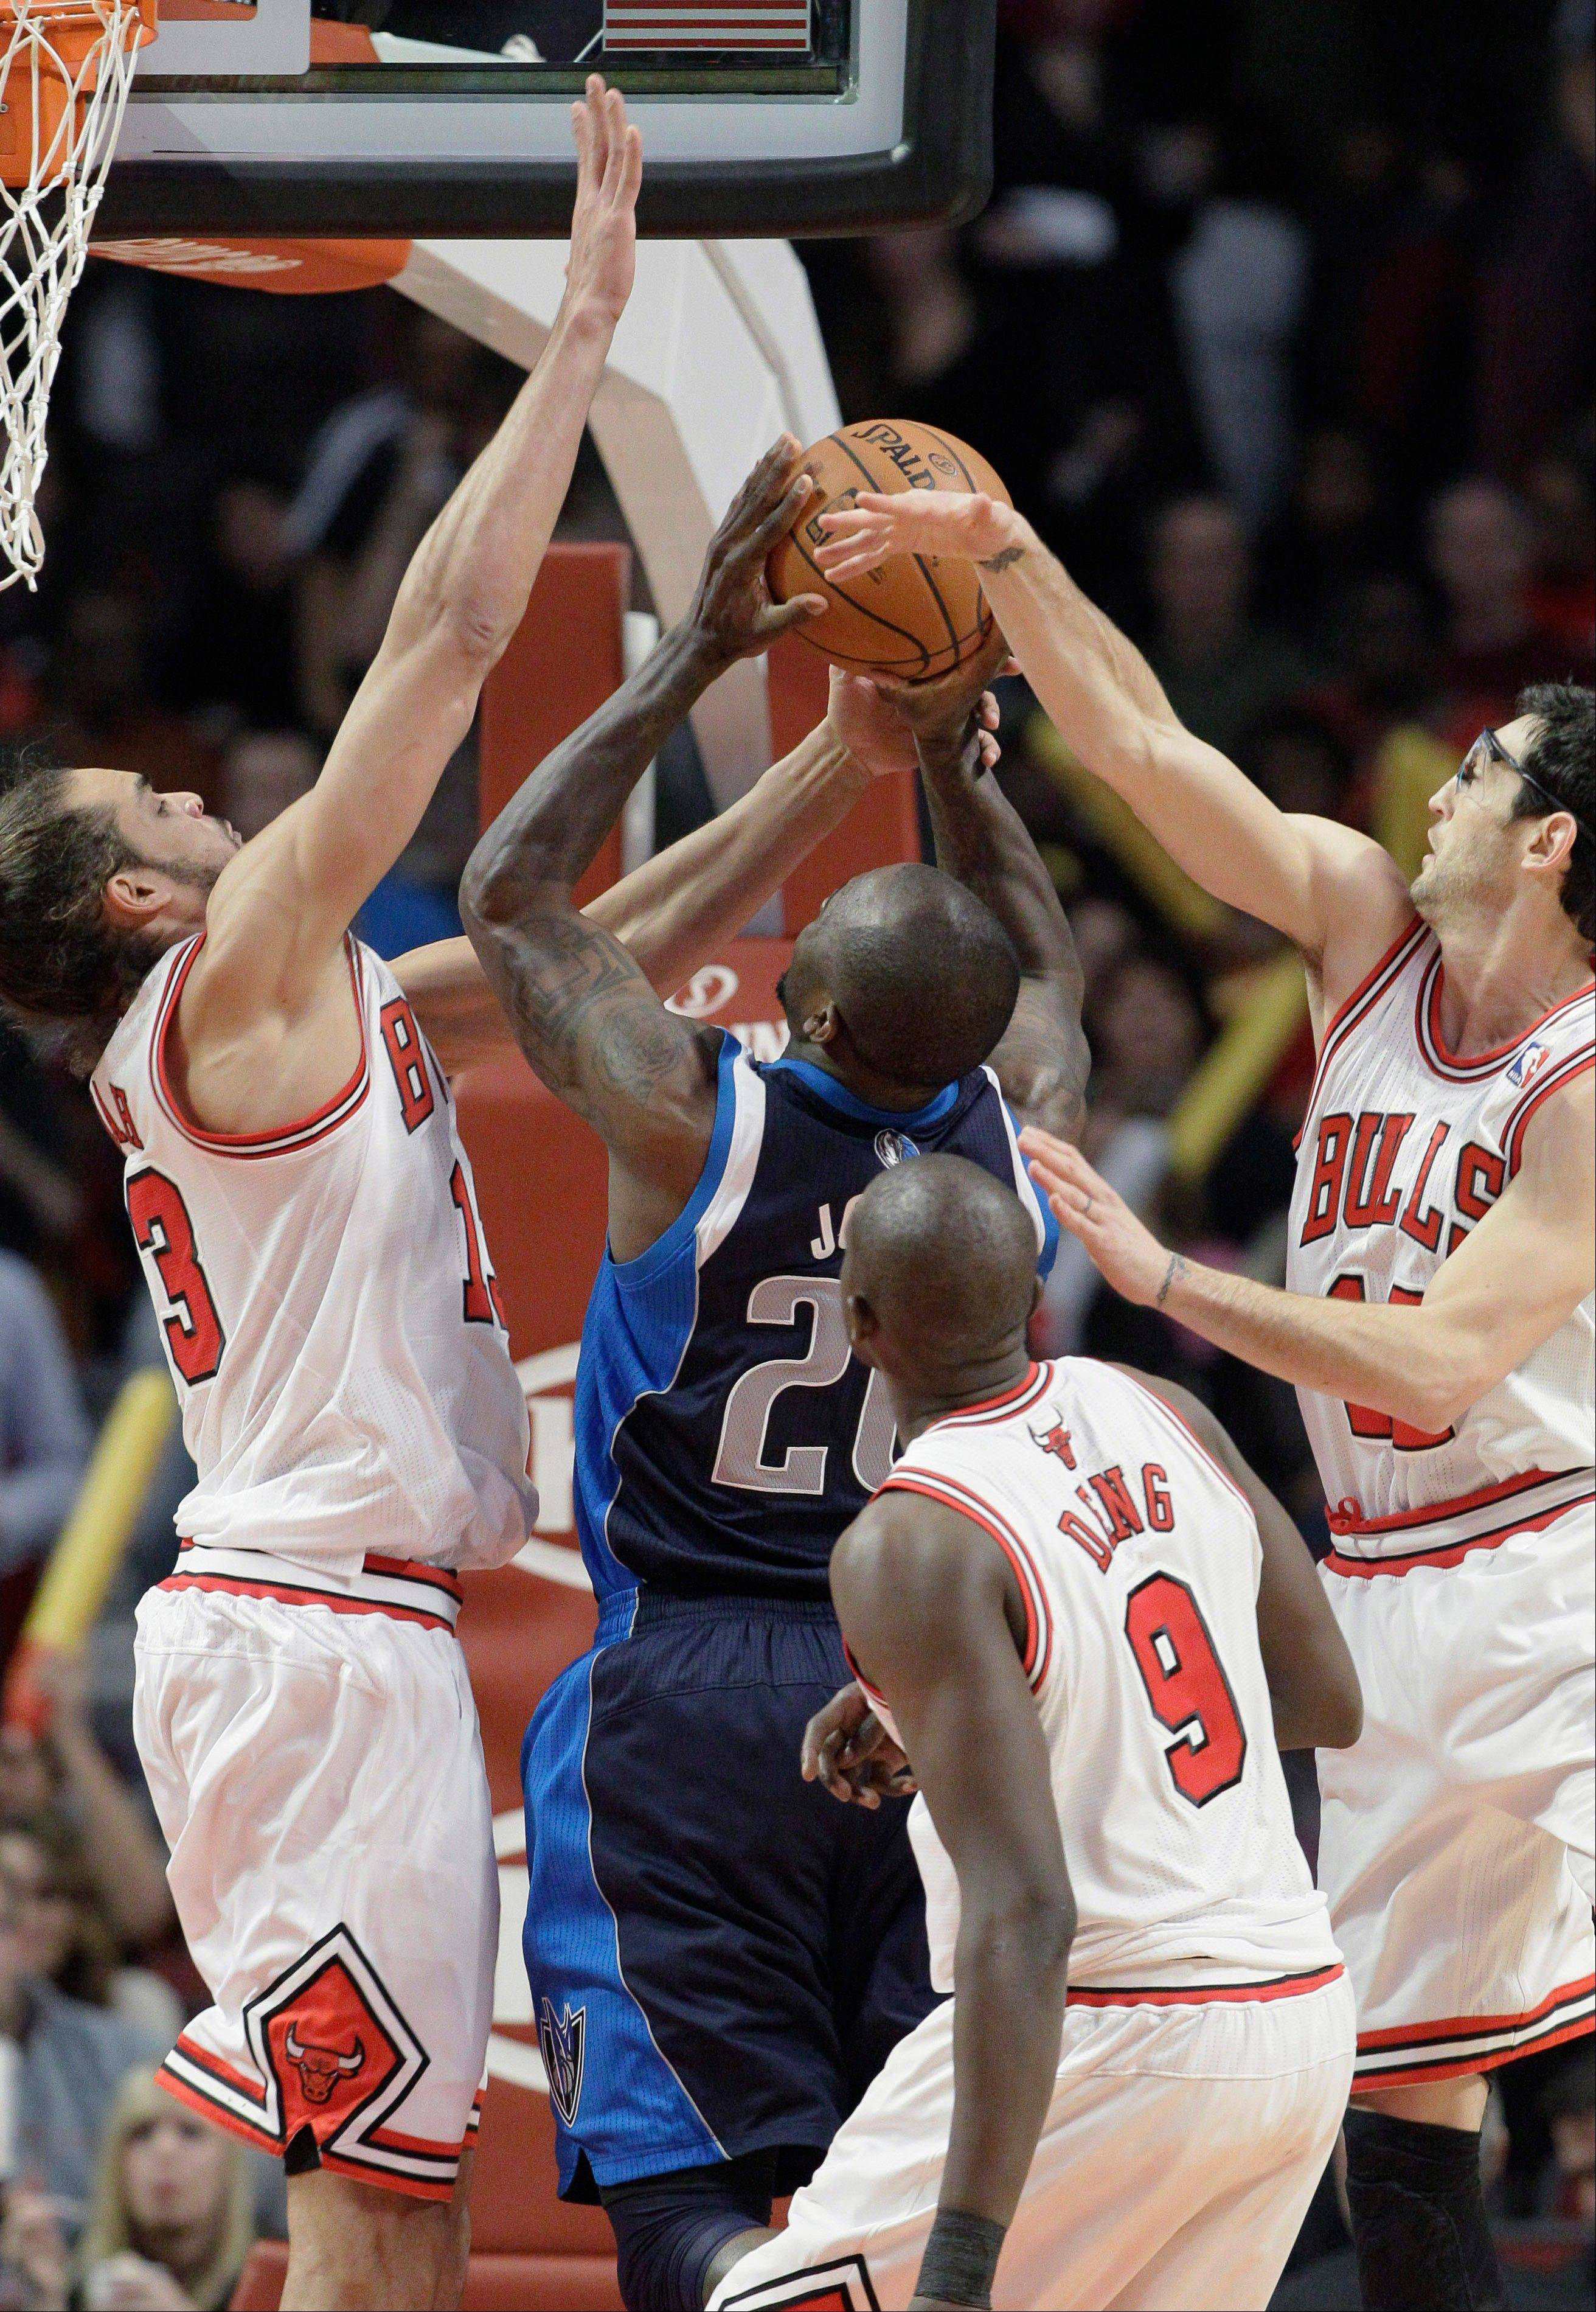 Bulls center Joakim Noah (13), guard Kirk Hinrich (12) and forward Luol Deng (9) apply the defense on the Mavericks' Dominique Jones during the second half Wednesday night.